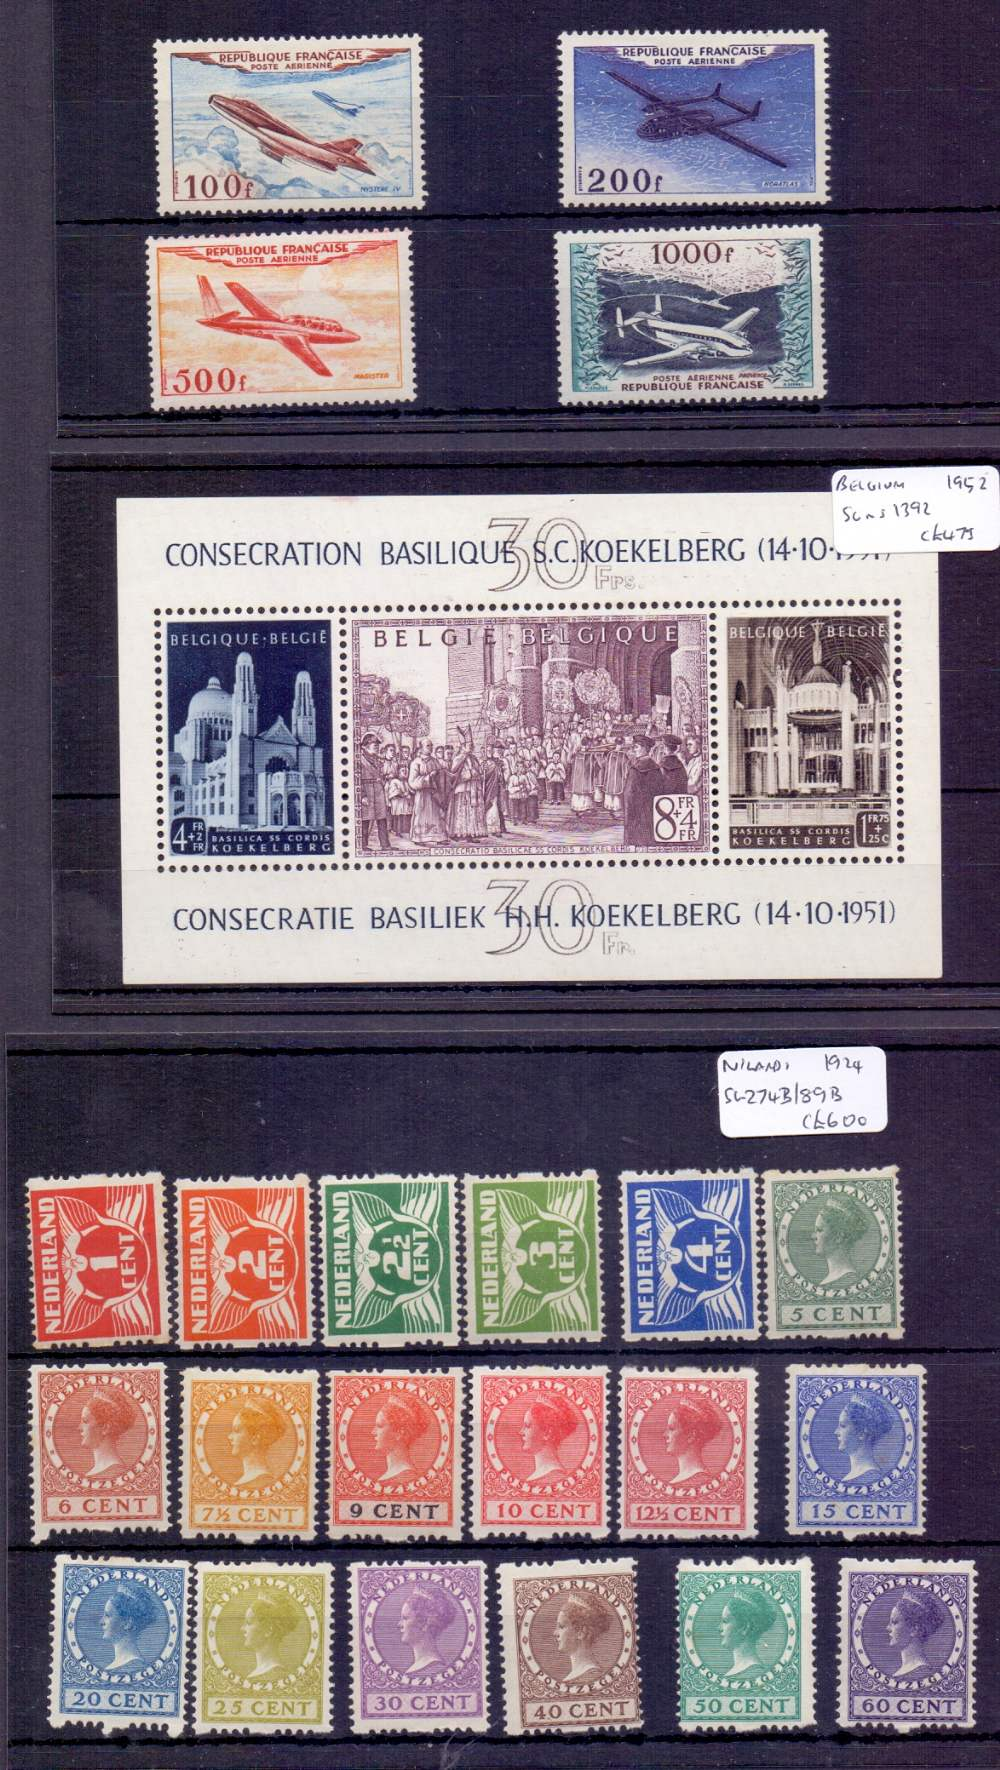 Lot 1 - WORLD STAMPS : Batch of Foreign stamps previously individually offered in our auction,